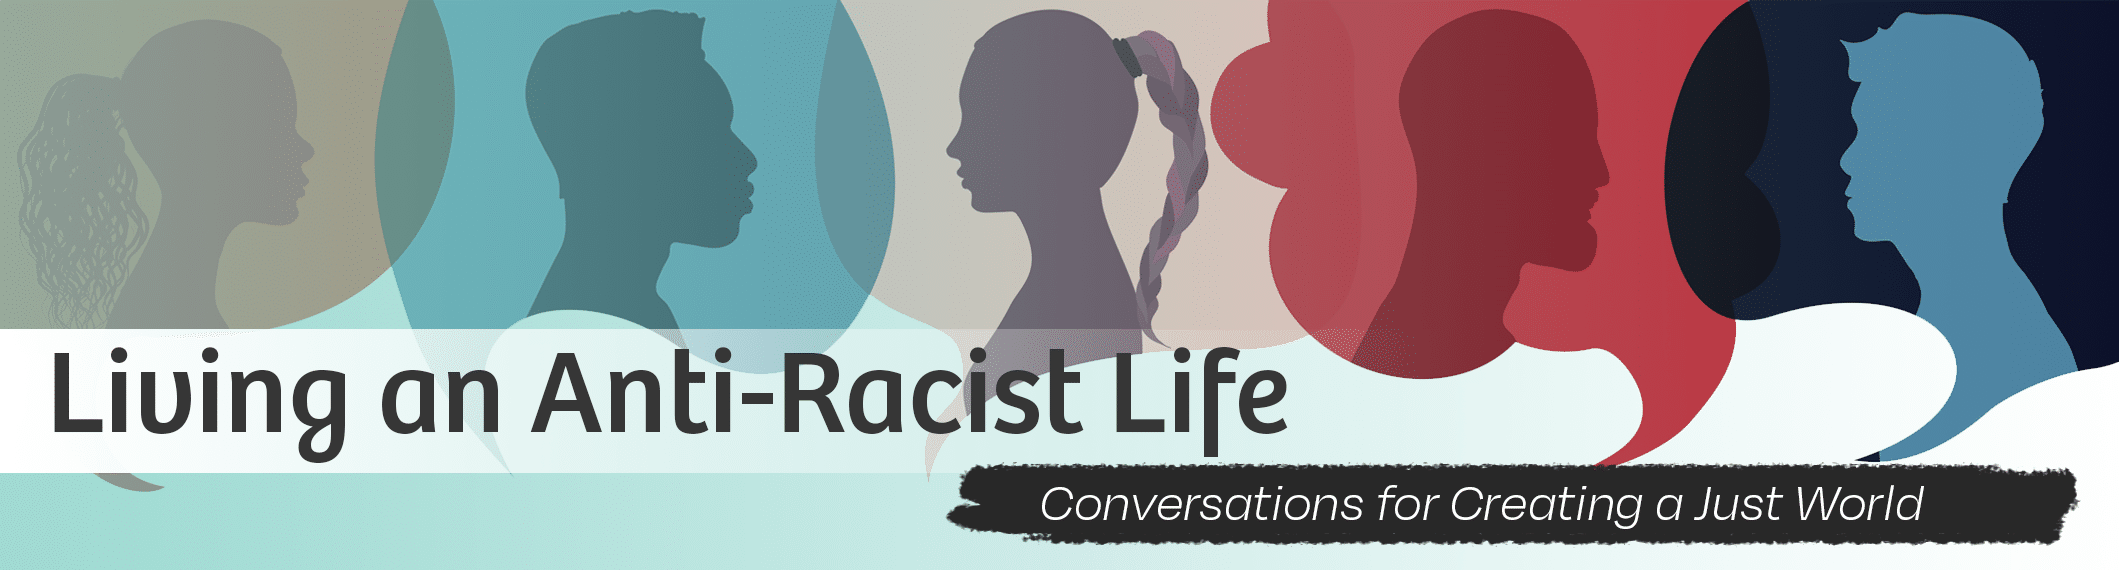 Living an Anti-Racist Life: Conversation for Creating a Just World